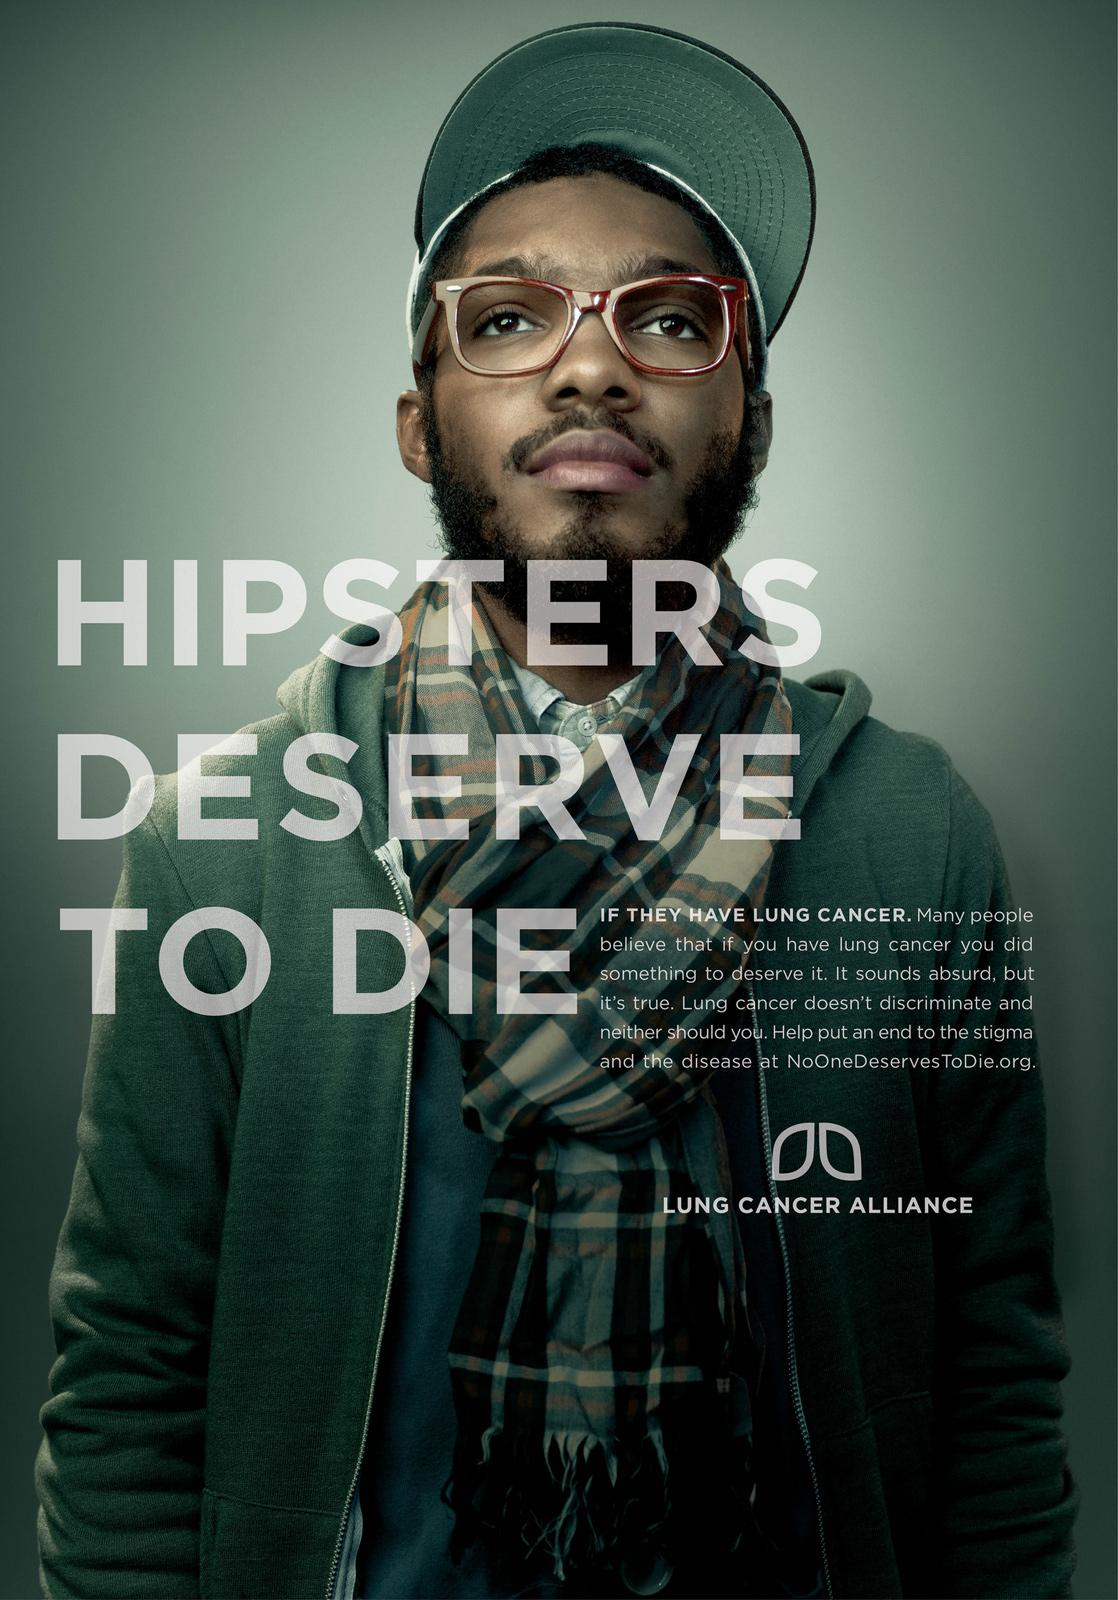 Lung Cancer Alliance Print Ad -  Hipsters